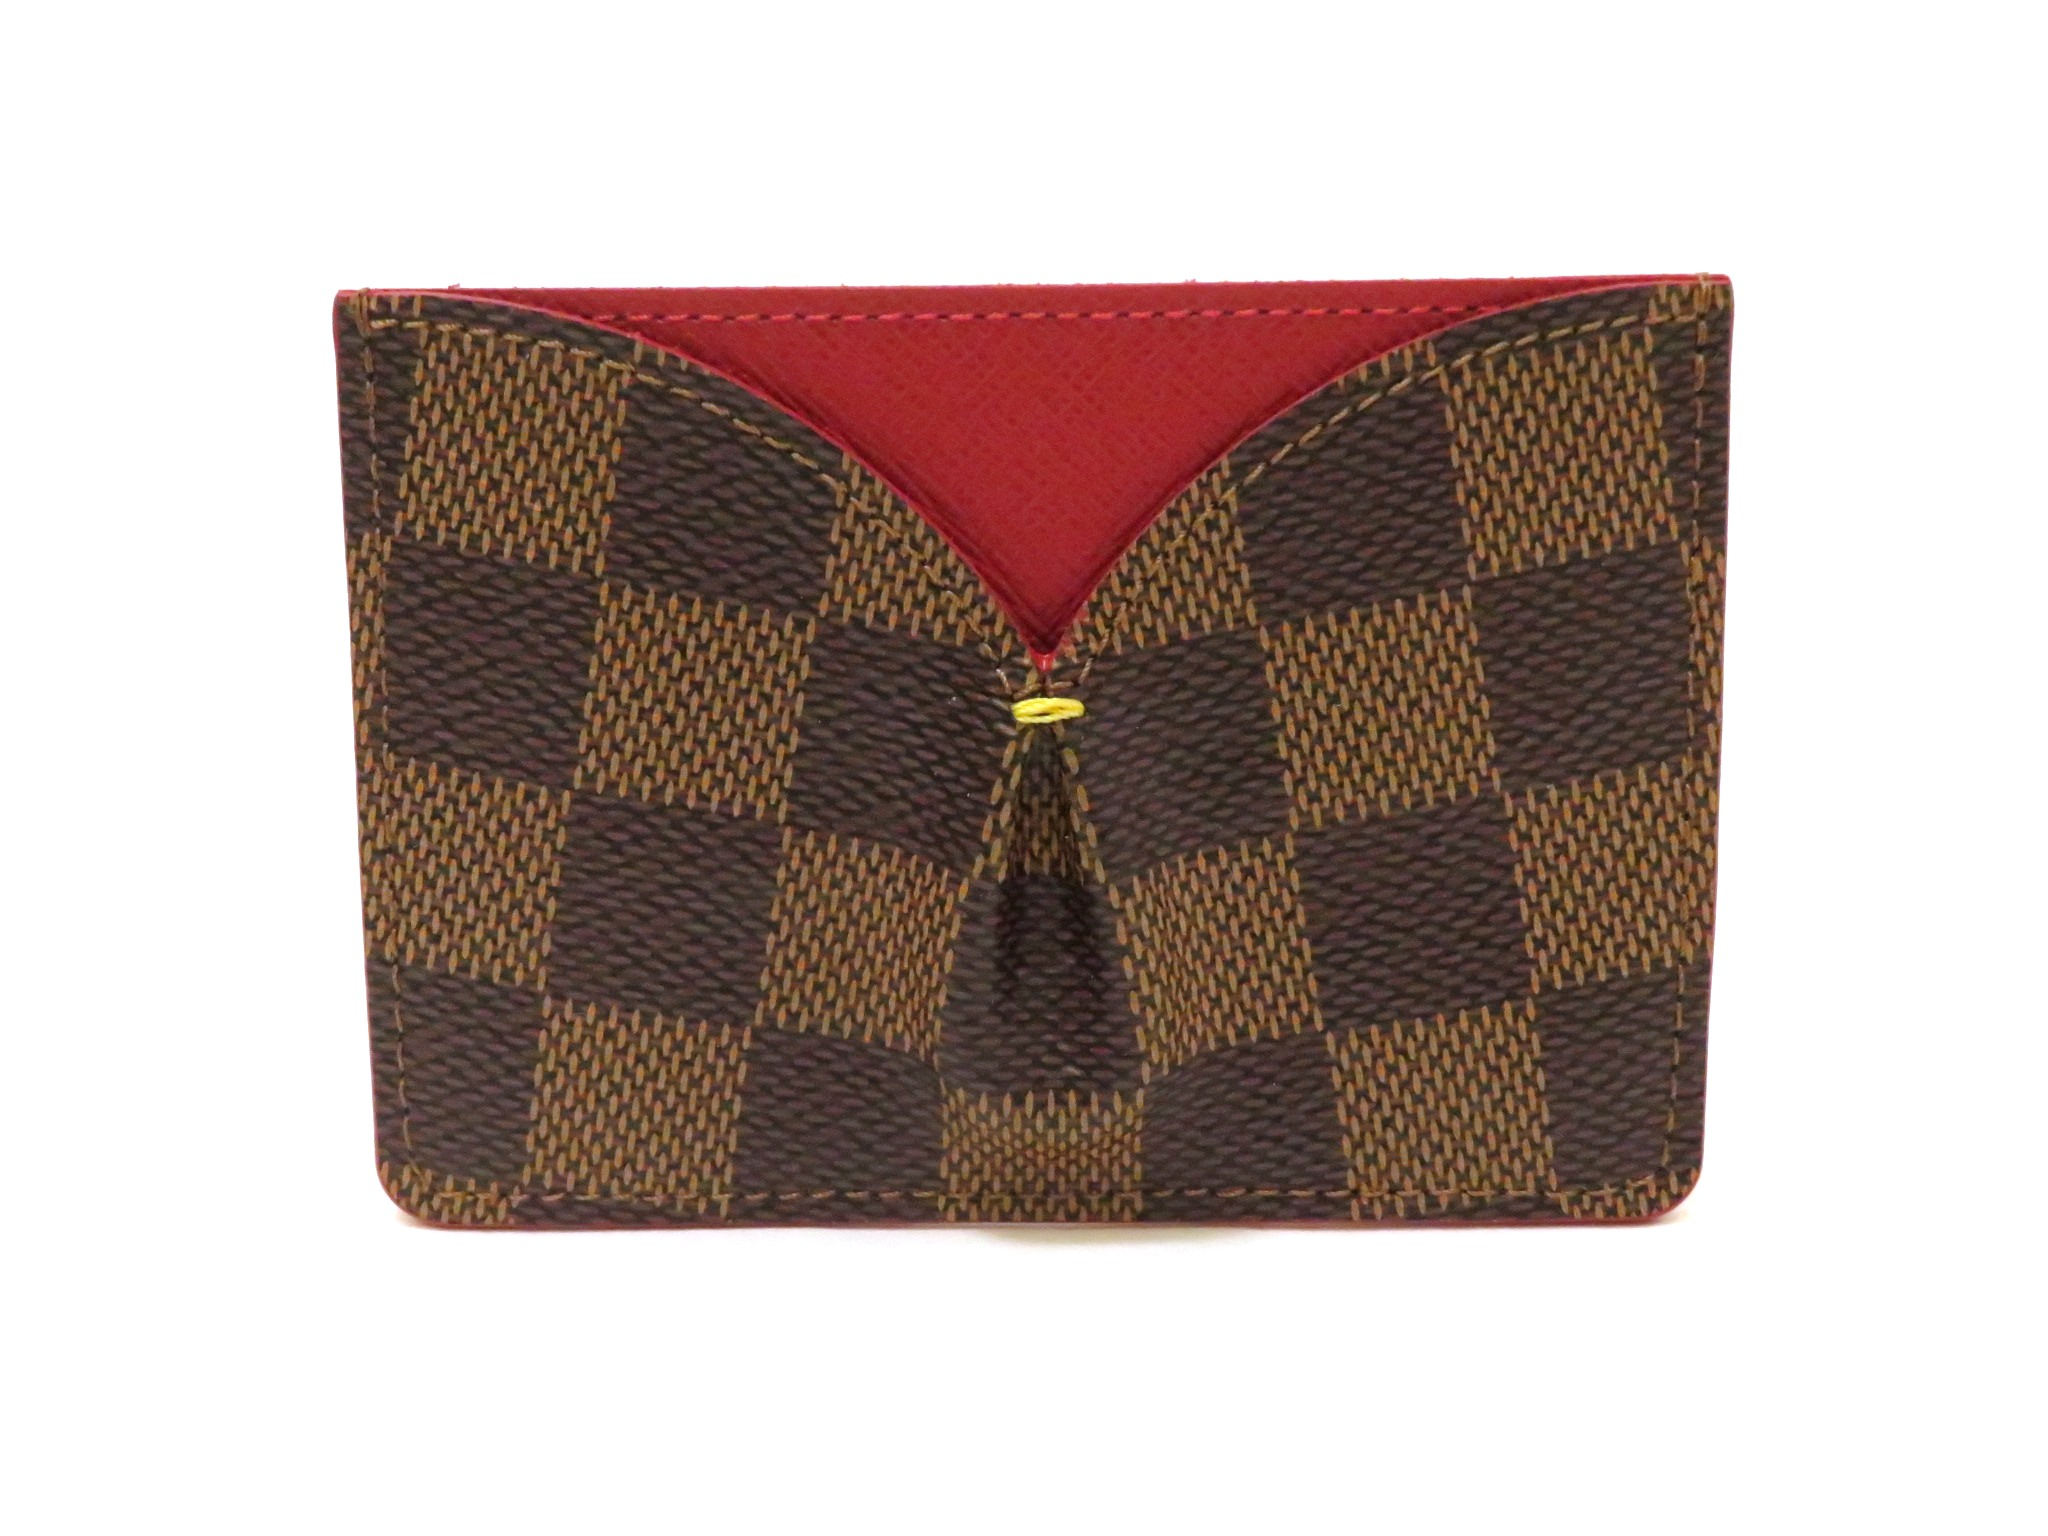 LOUIS VUITTON ルイヴィトン カードケース ポルトカルトカイサダミエスリーズ エベヌ N61219 【472】MY image number 0